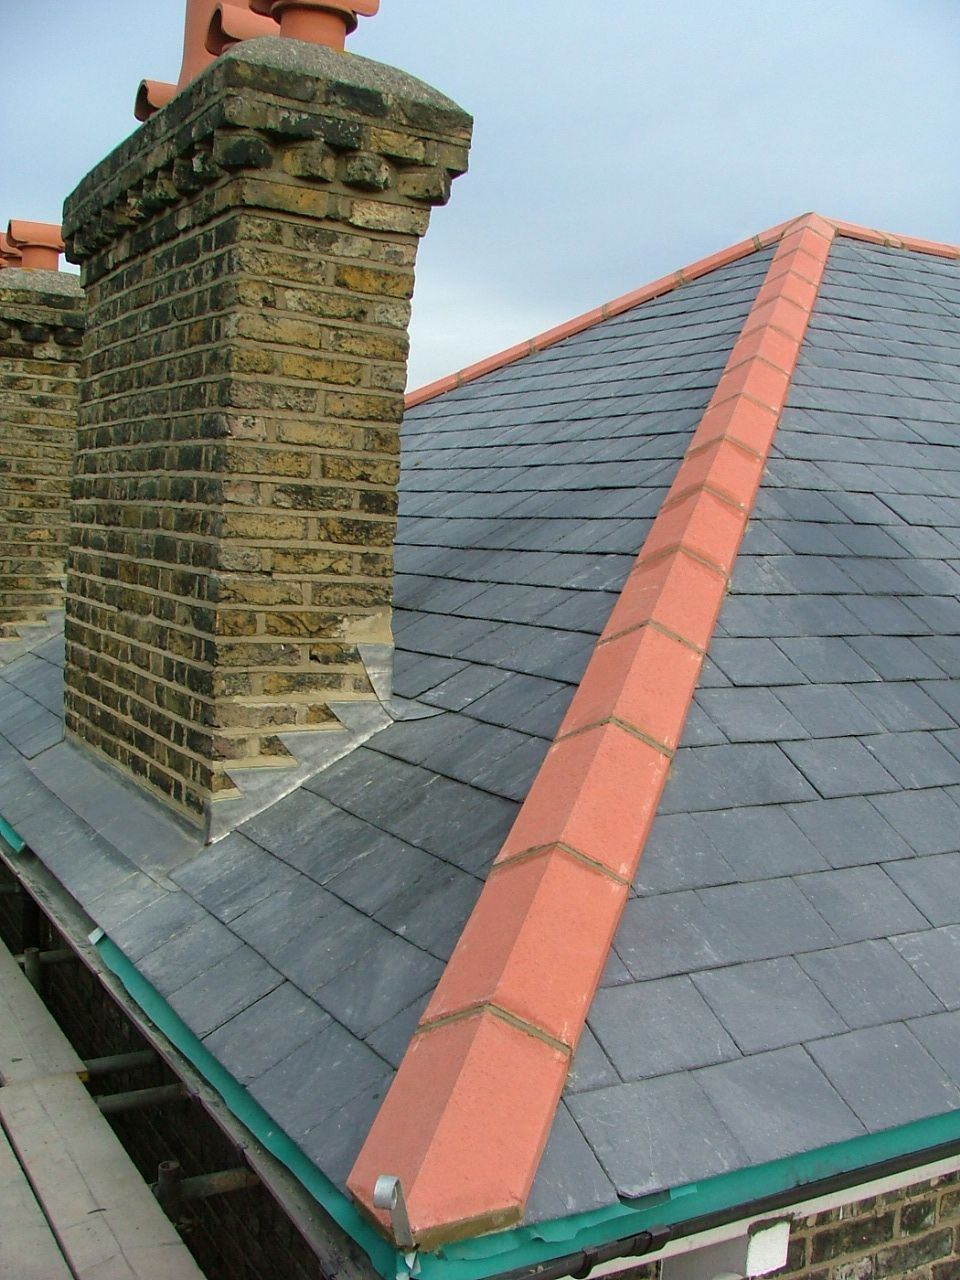 New Natural Slate Roof With Universal Hips And Ridge Lead Flashings Back Gutter Around Chimney Stacks Call Scott On 07886113418 Billy